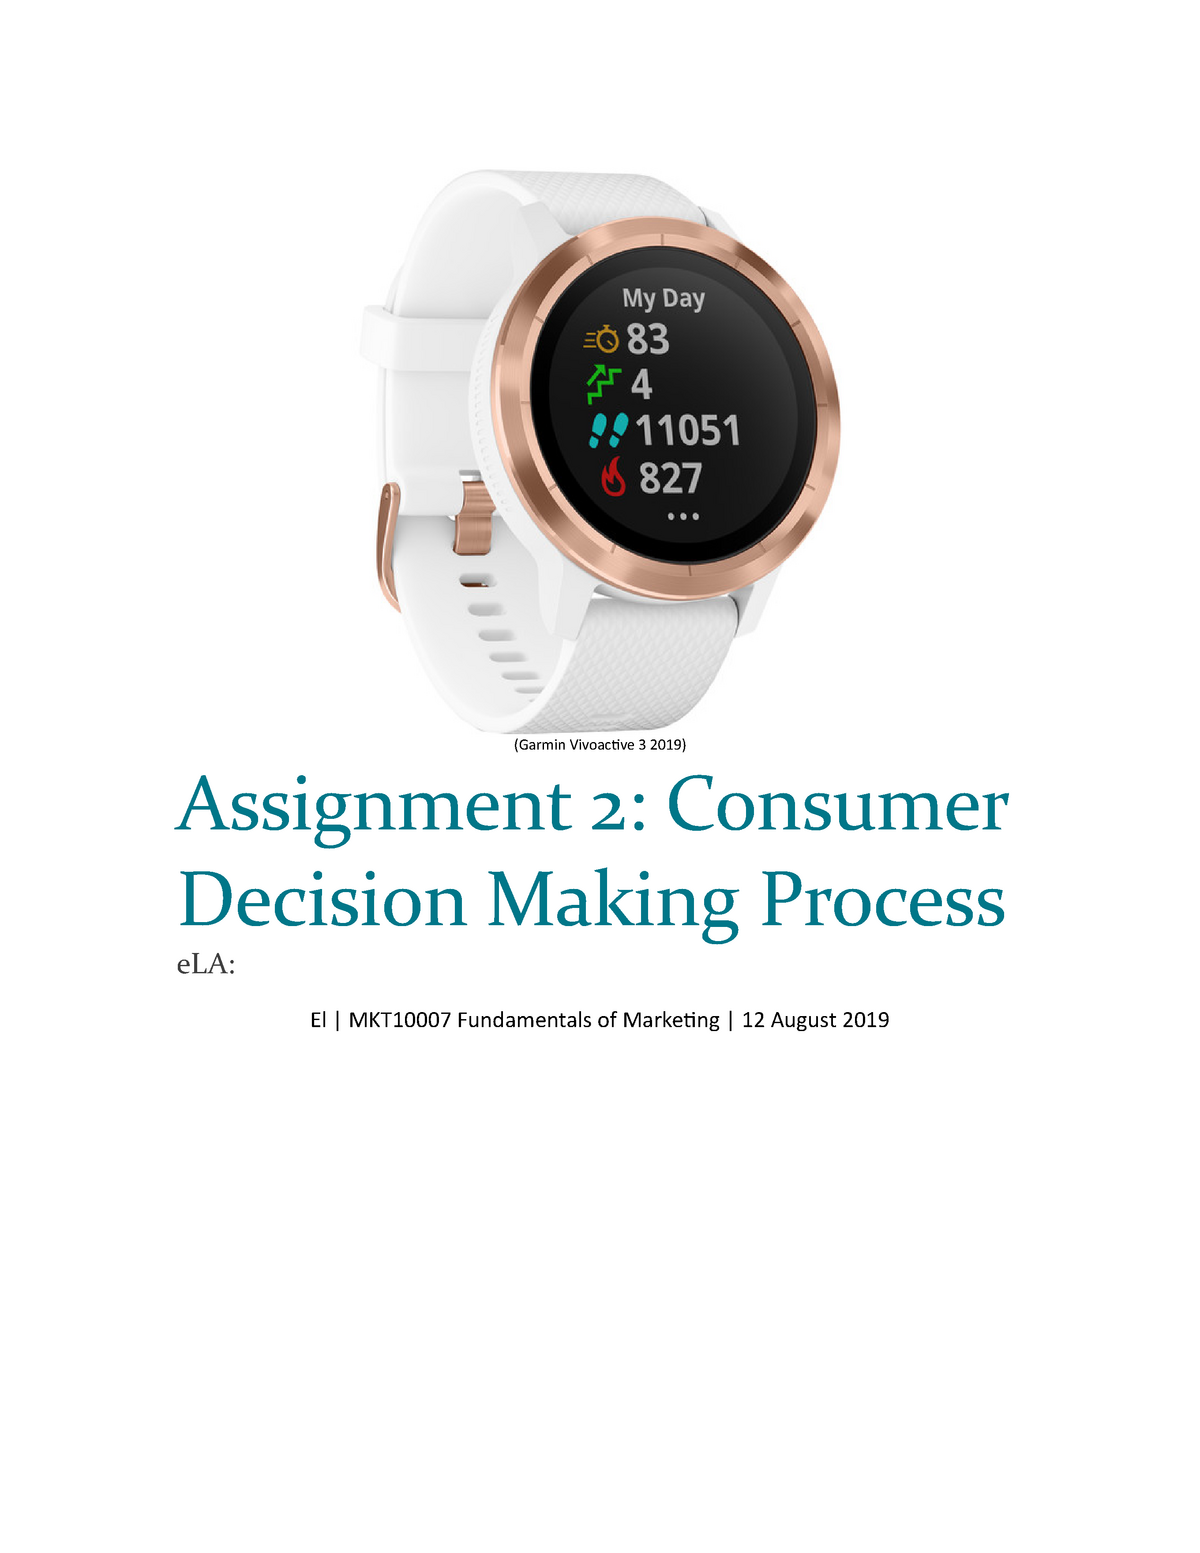 Assignment 2 Consumer decision making process - MKT10007